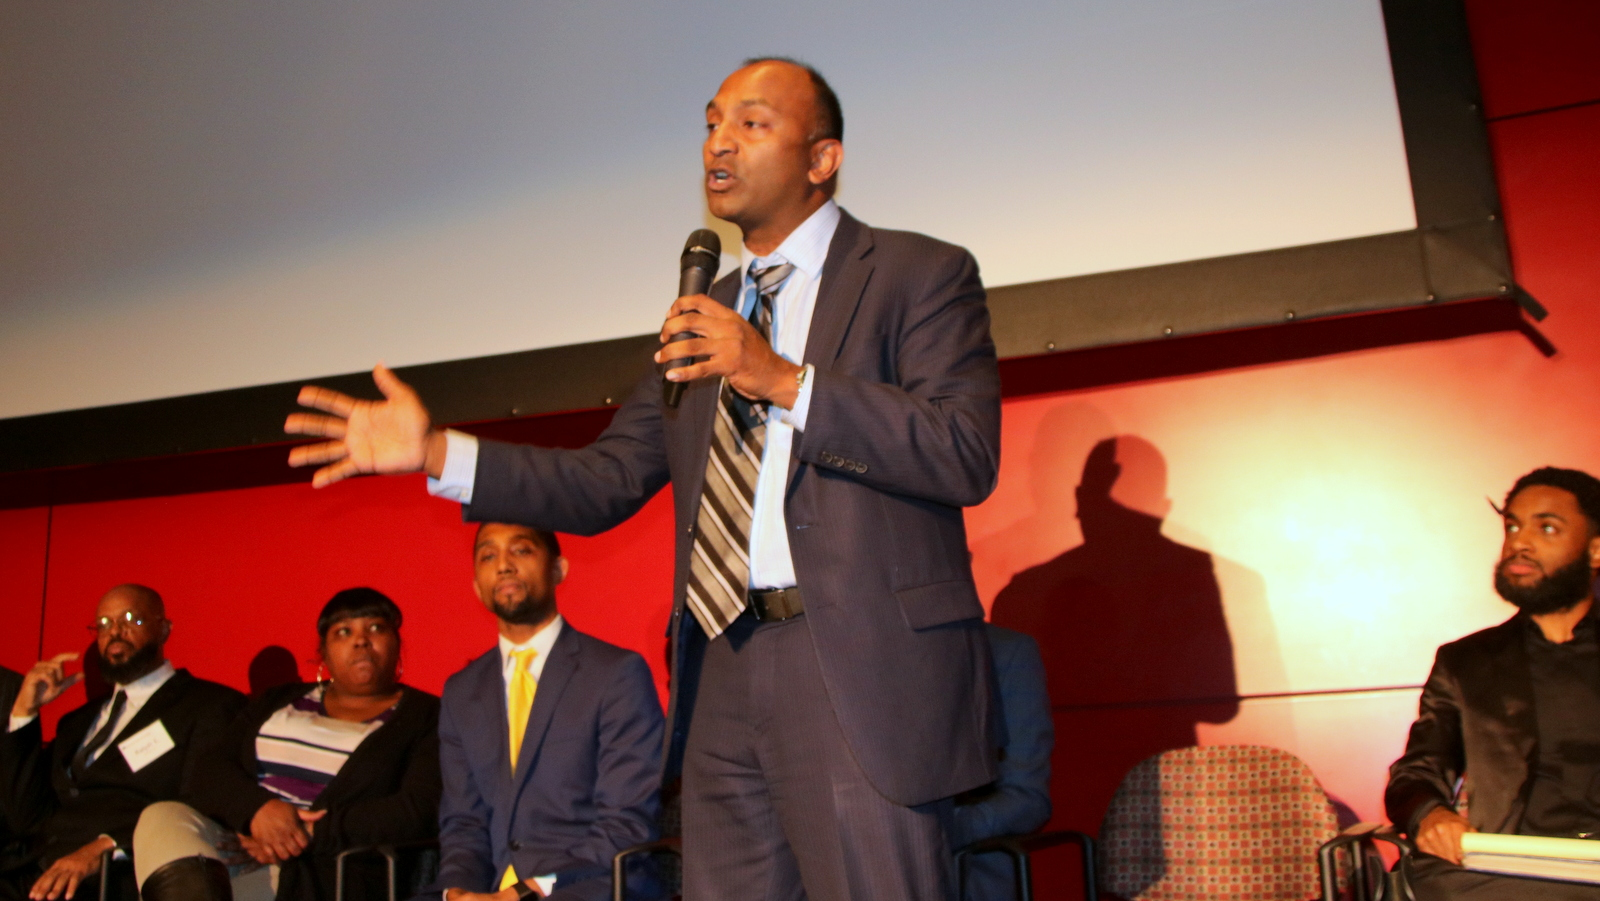 Thiru Vignarajah at a mayoral candidates' forum held at the Reginald F. Lewis Museum in Baltimore. (Fern Shen)